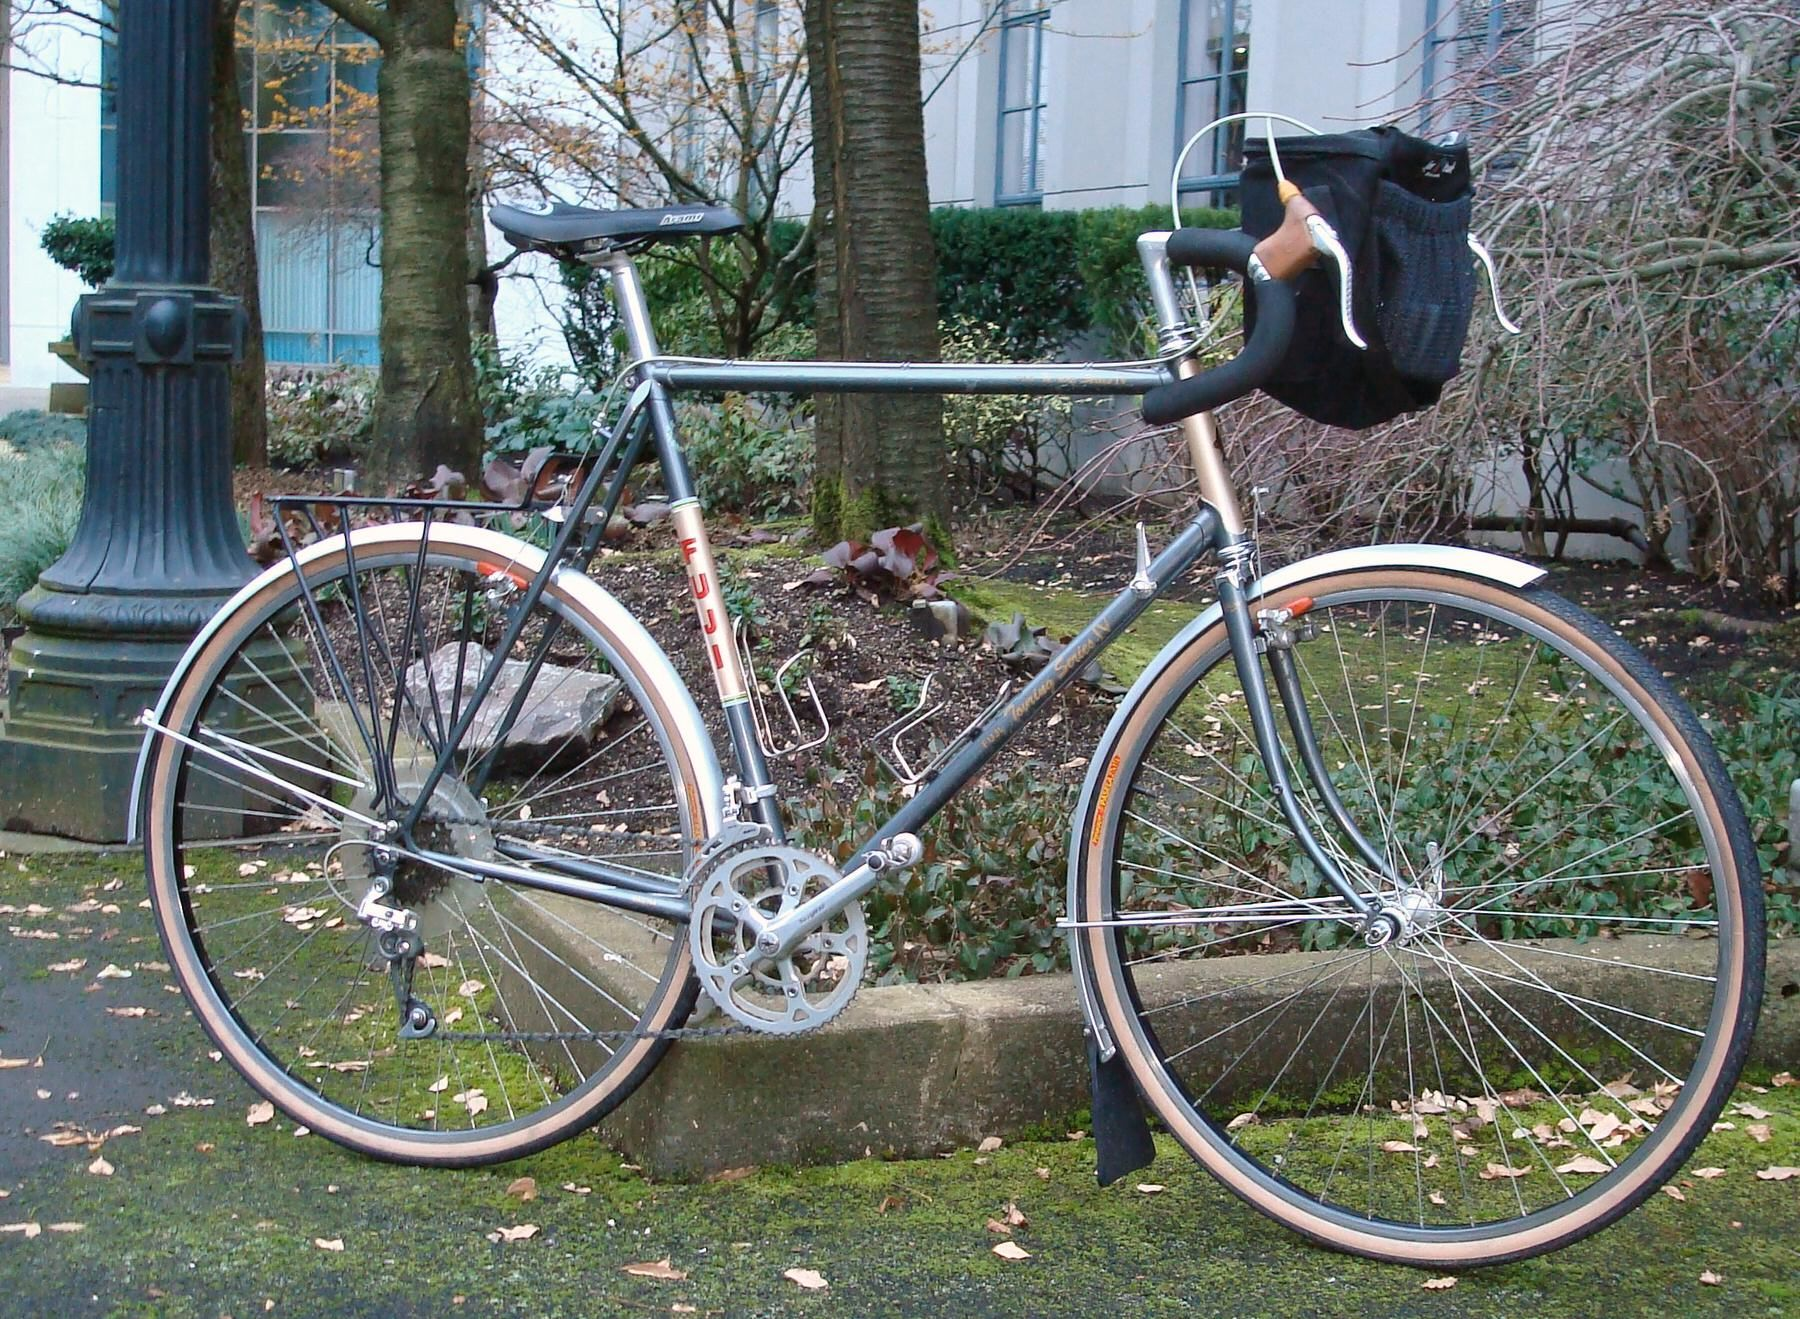 & of course       a Fuji bicycle | Vintage Bicycles | Touring bike